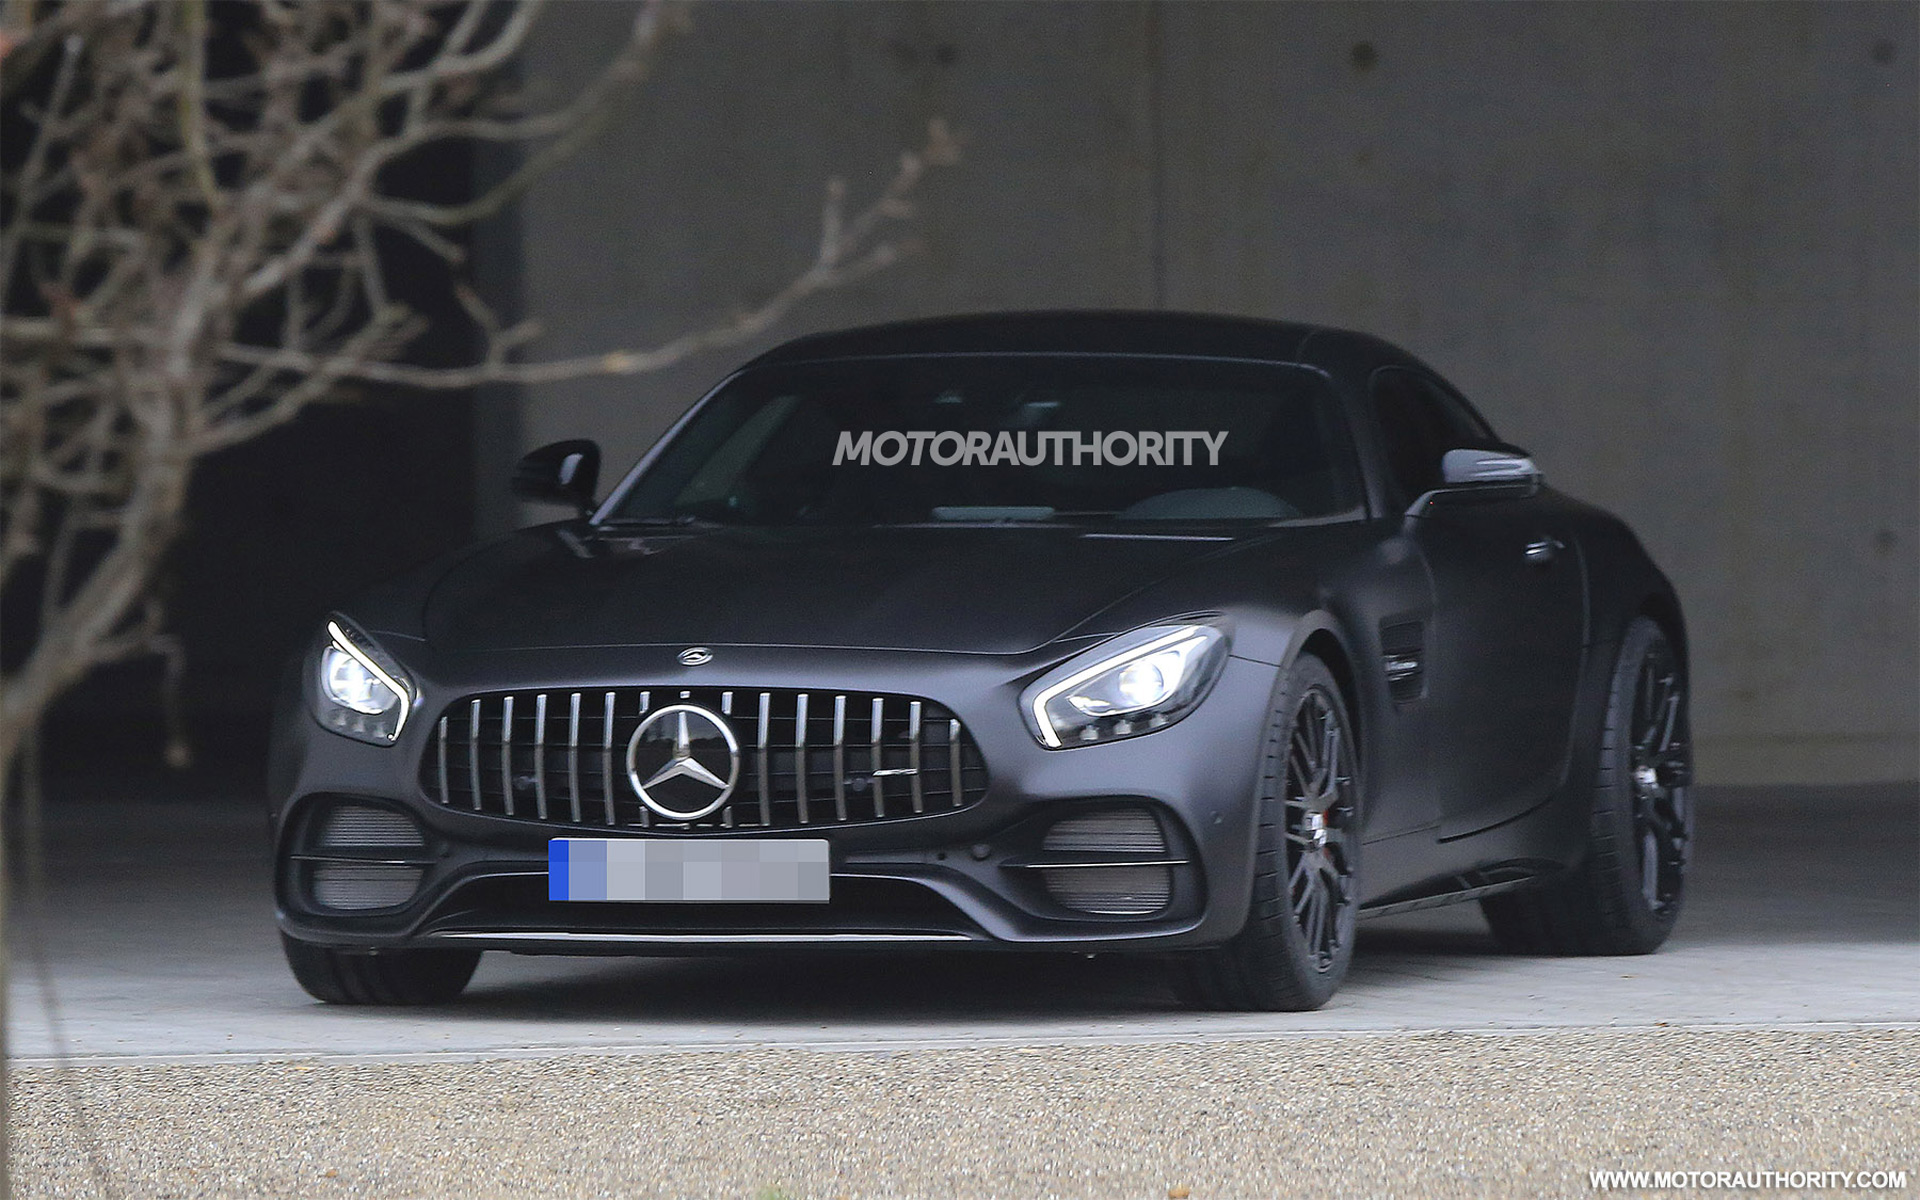 2018 mercedes benz amg gtr. wonderful amg on 2018 mercedes benz amg gtr